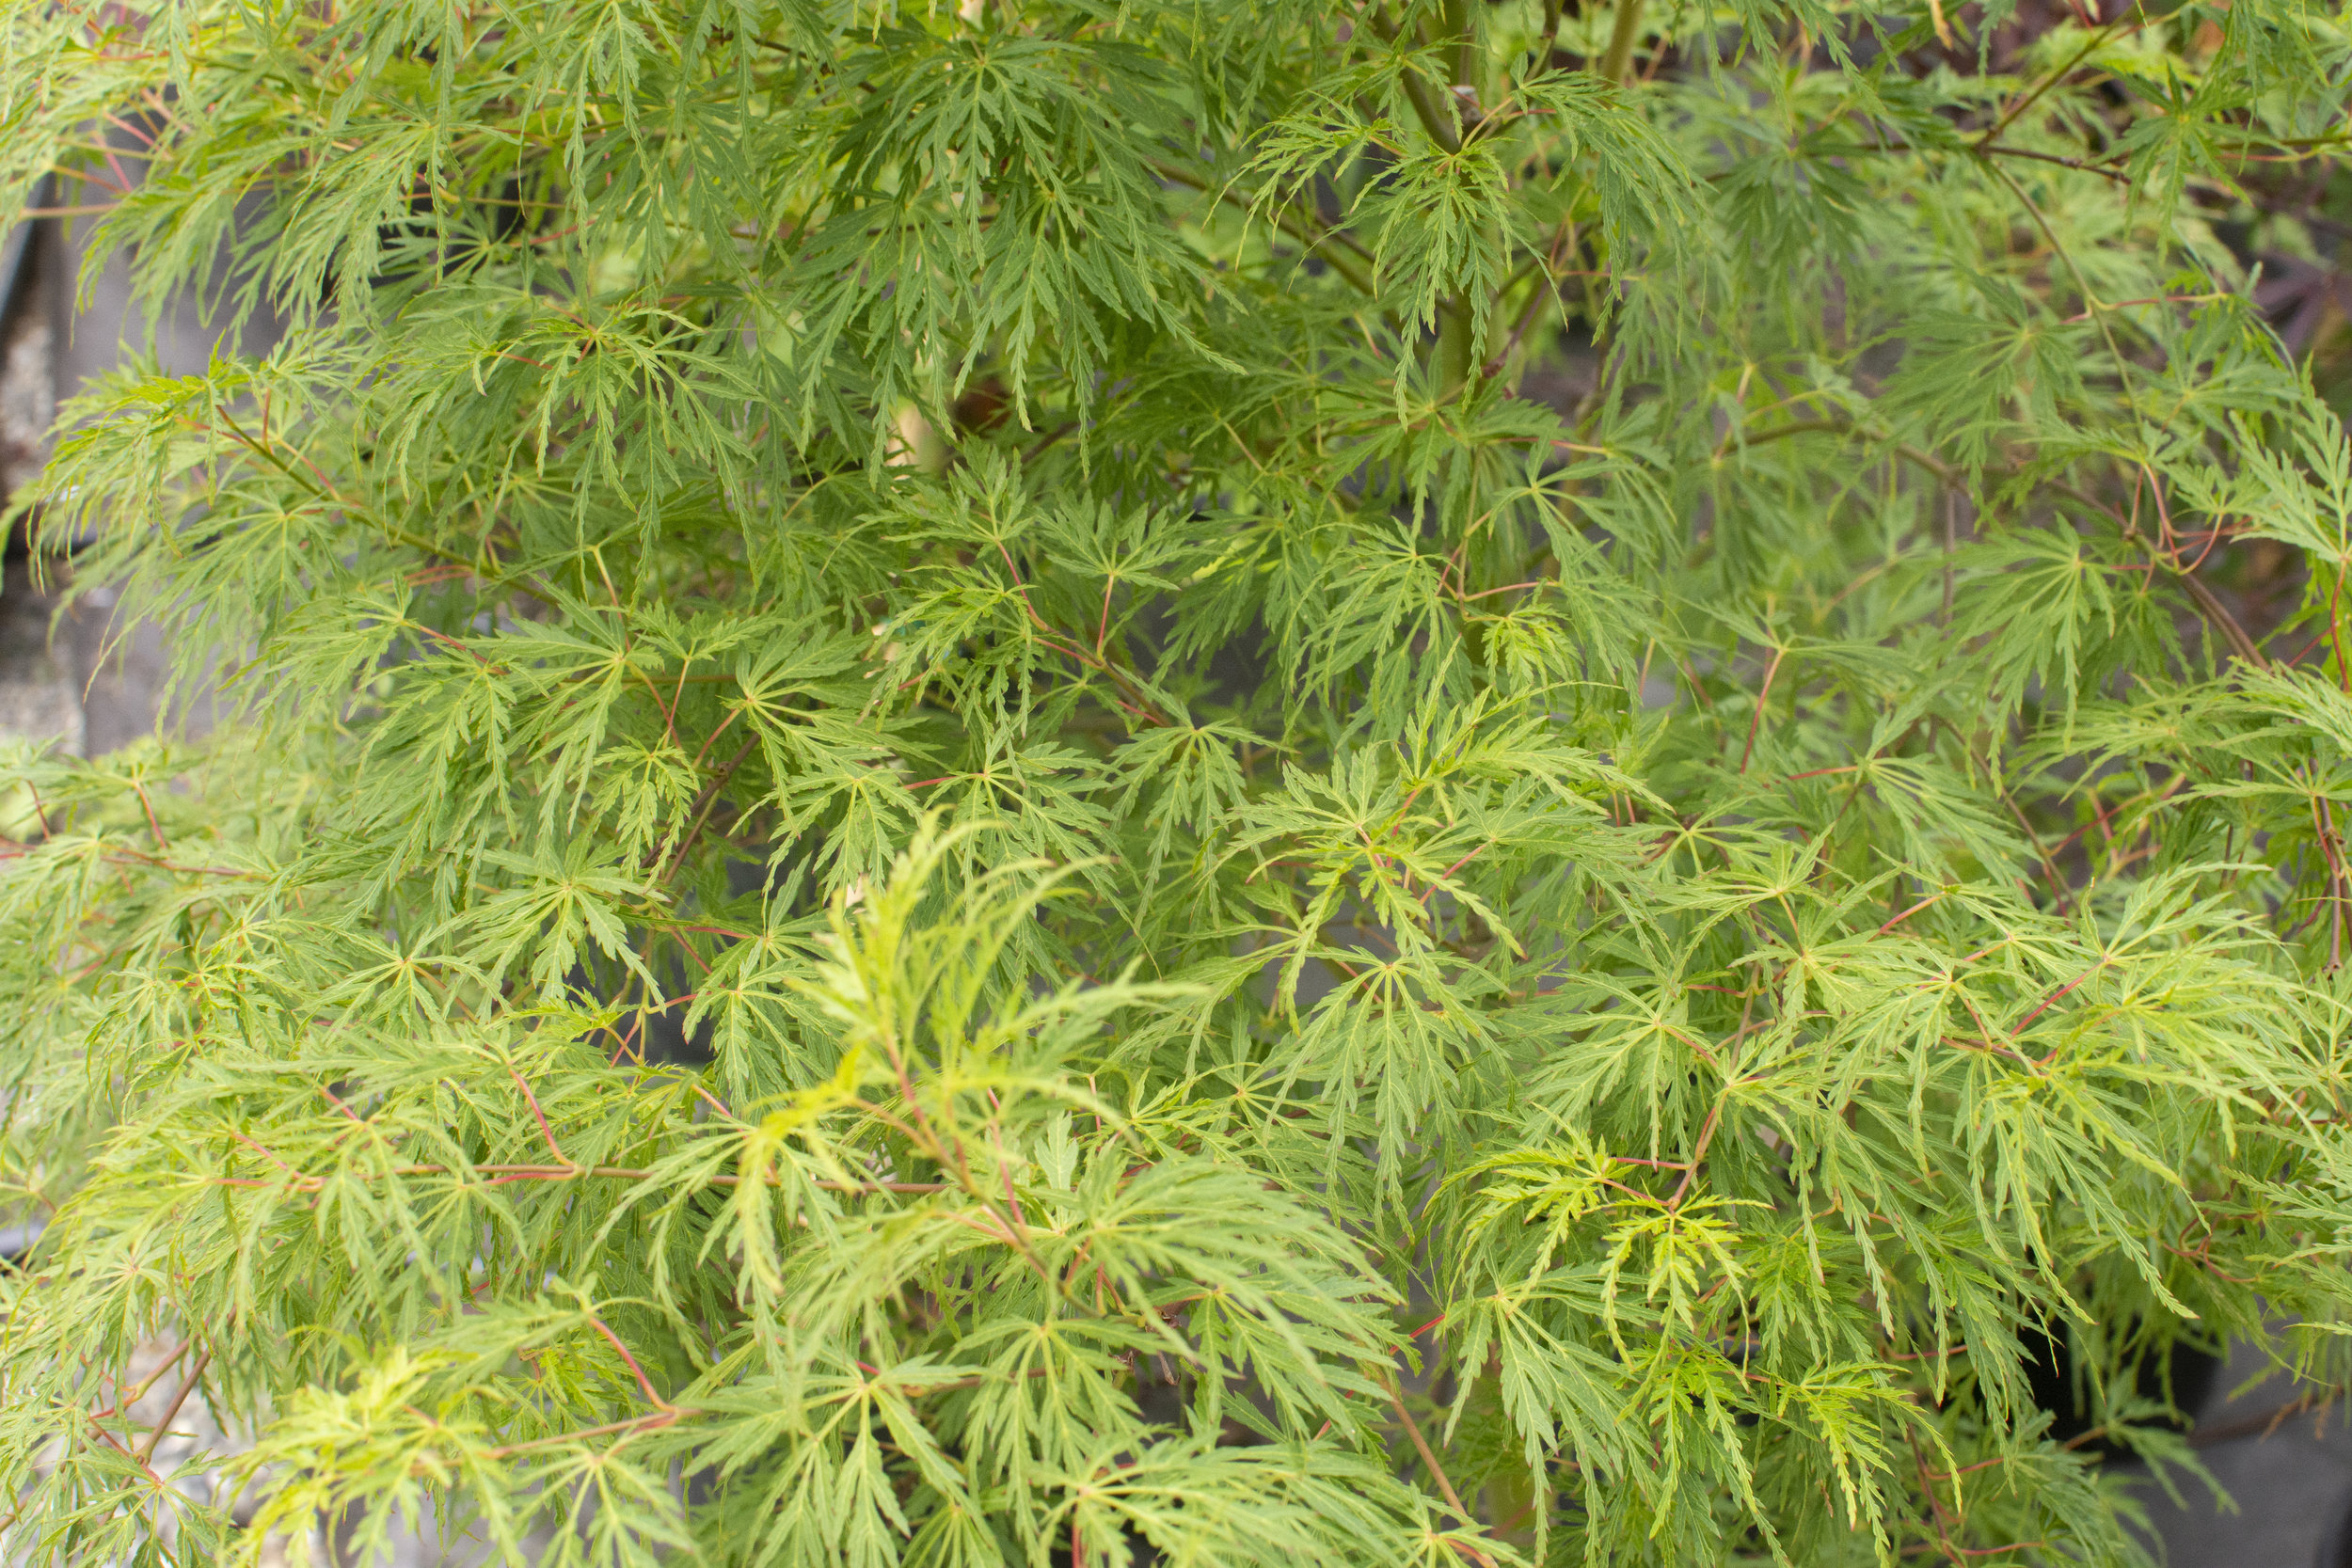 ACER p.'Seiryu' - Upright shape with light green leaves in spring. Dark green in summer, turning orange, yellow, and red in autumn.Mature size: 10-15'